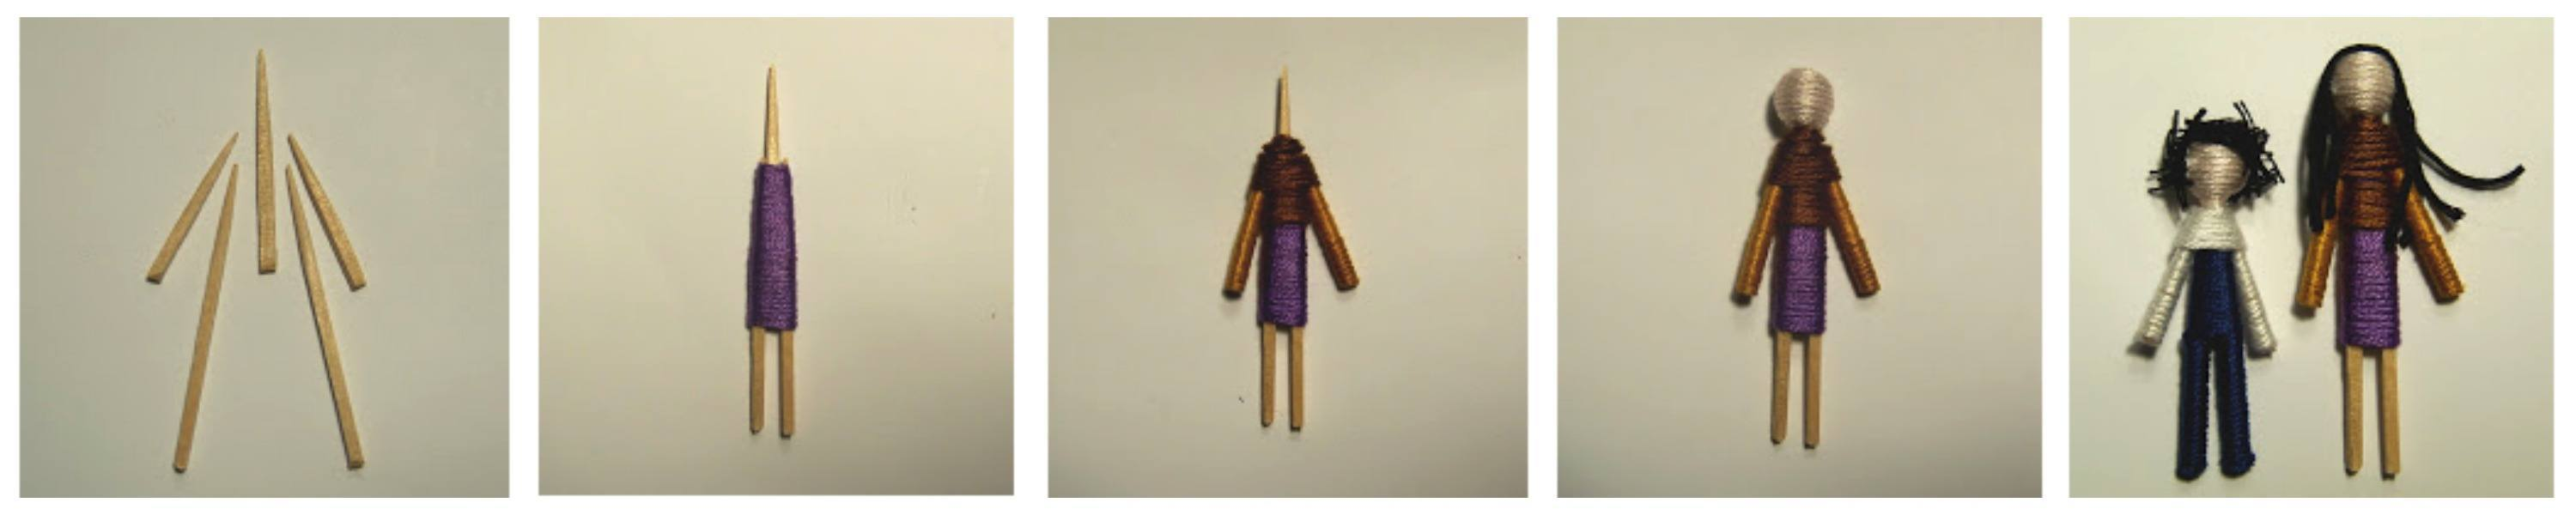 Worry dolls made from toothpicks